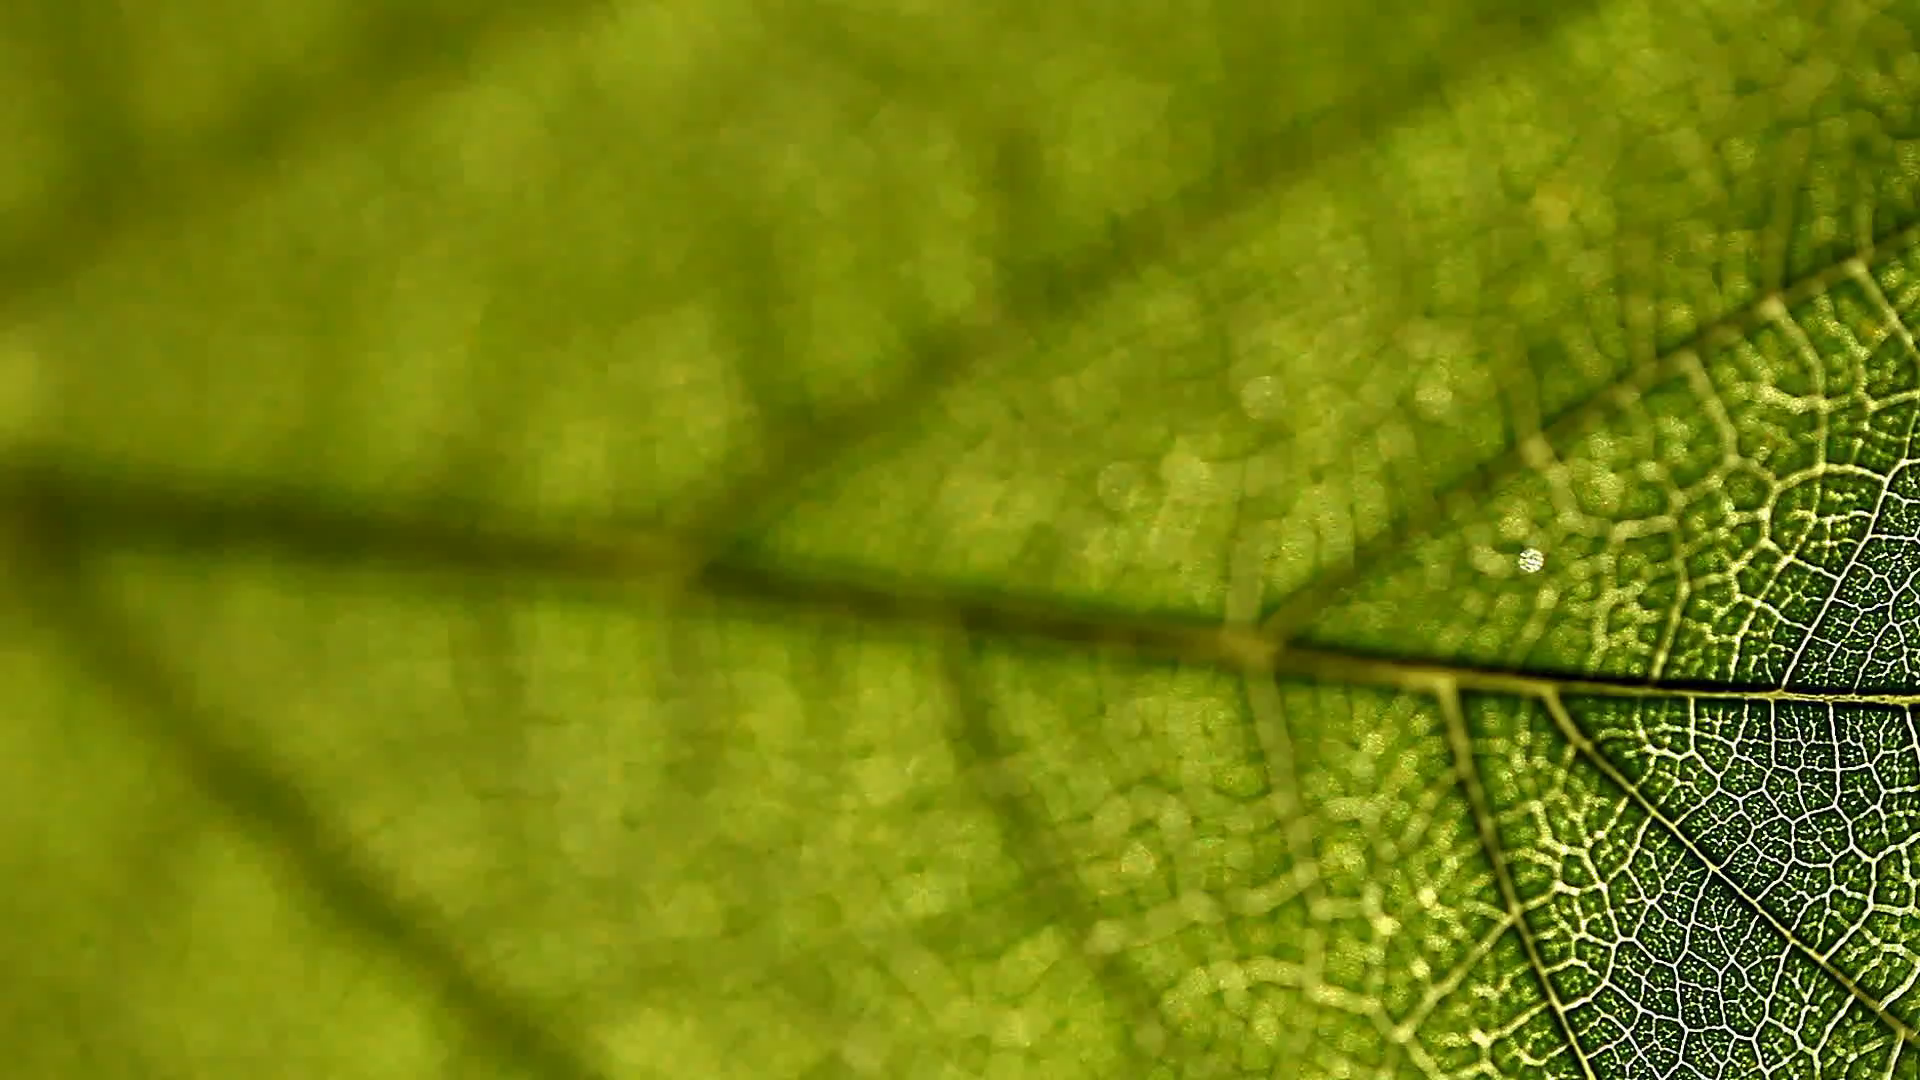 leaf, macro, nature, texture, background Stock Video Footage ...